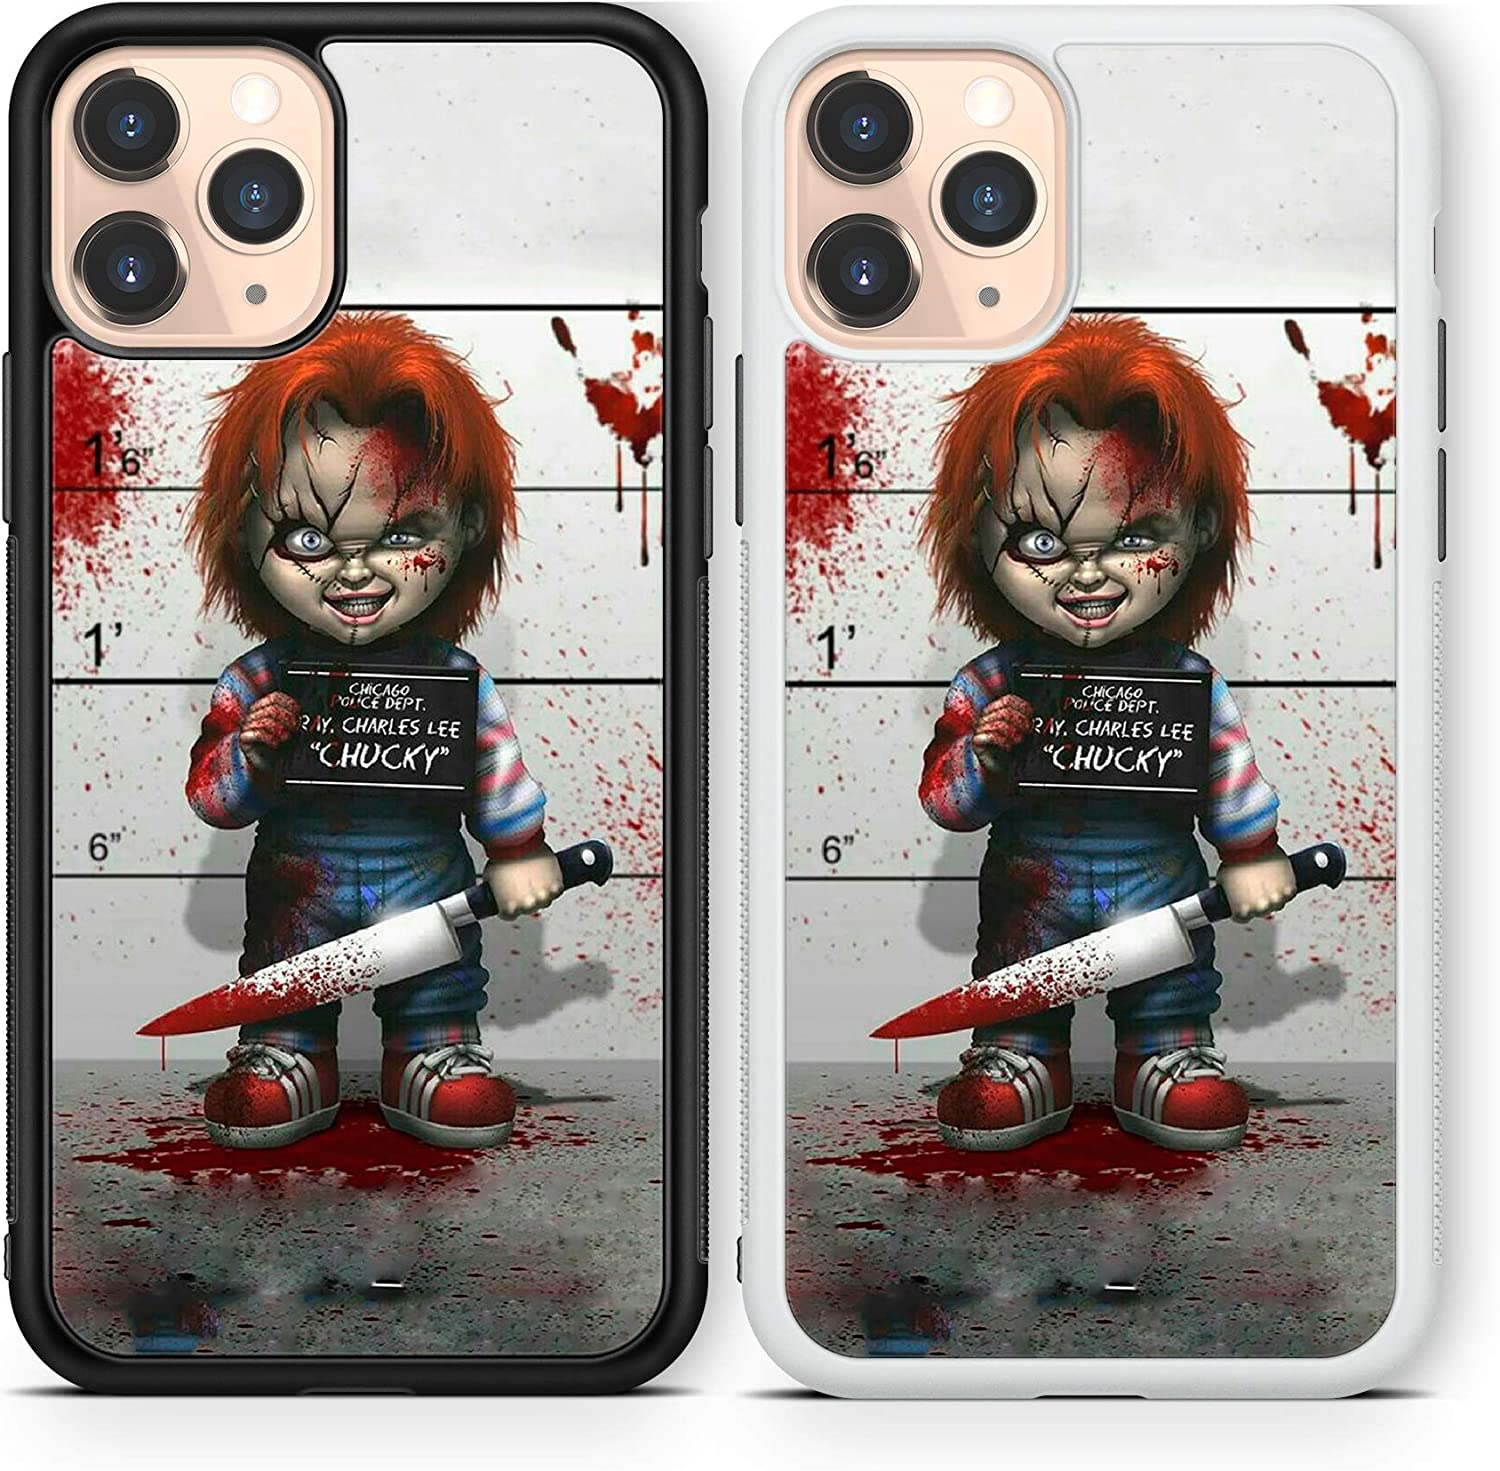 Halloween Scary case Compatible with iPhone 12 pro max Mini 11 XR X 7 8 SE Galaxy S20 Ultra S10 Note 10 20 TPU Cover SN192 (White, for iPhone 12 Pro max)